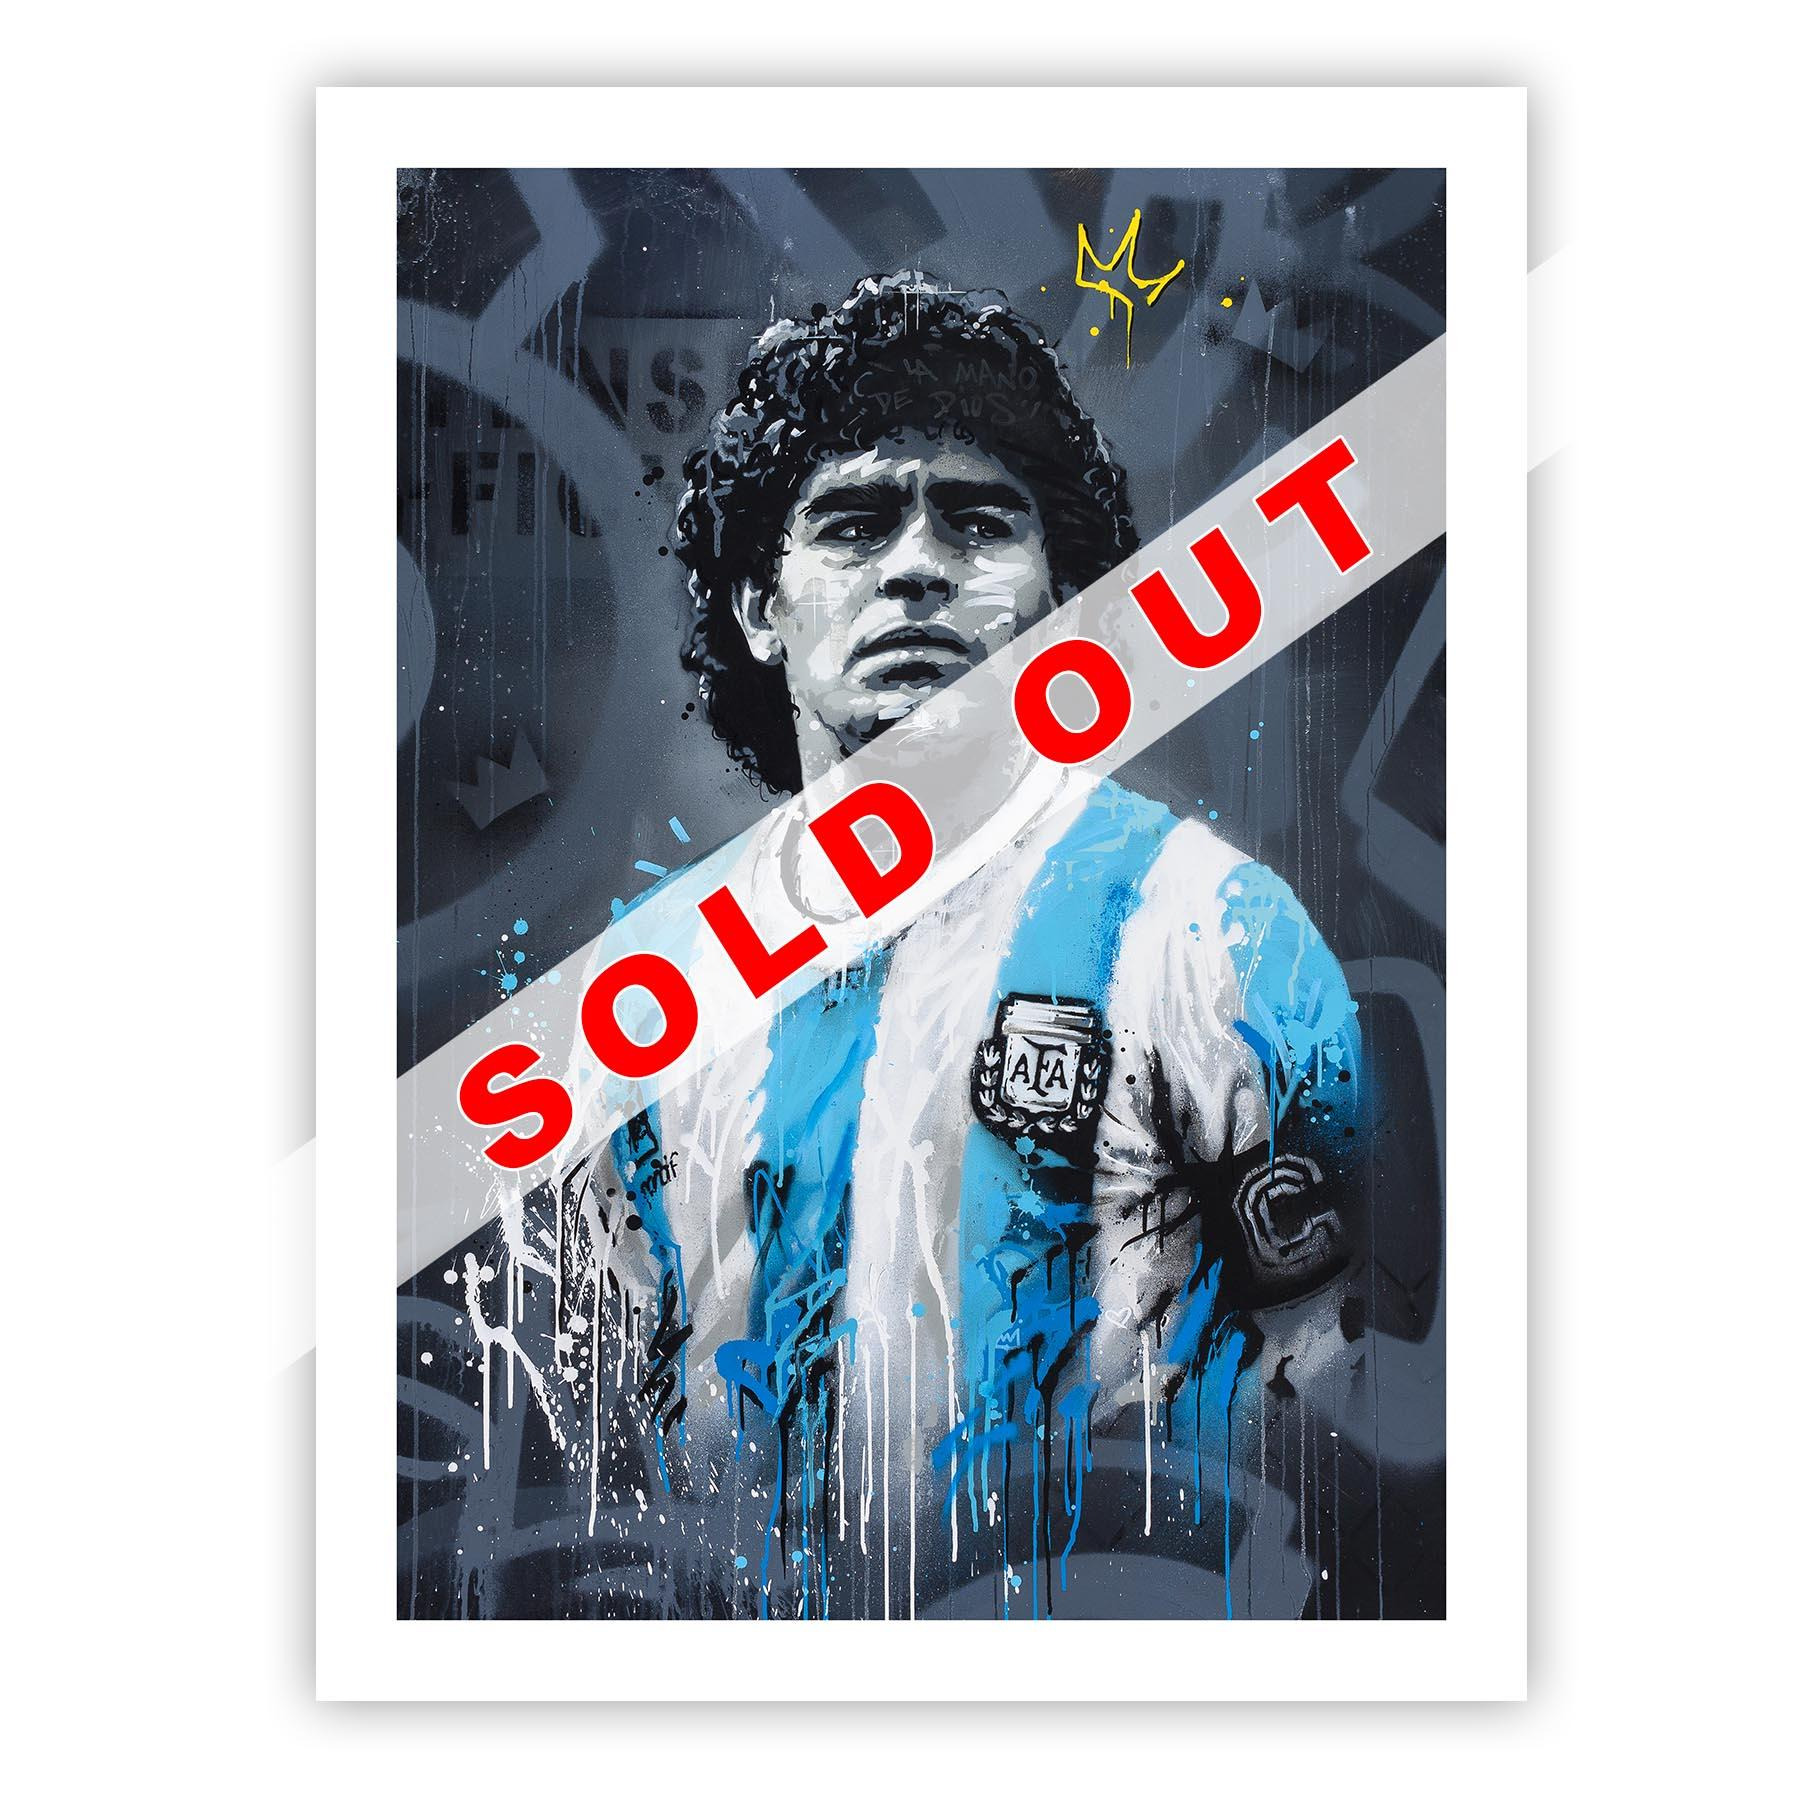 Sold out site